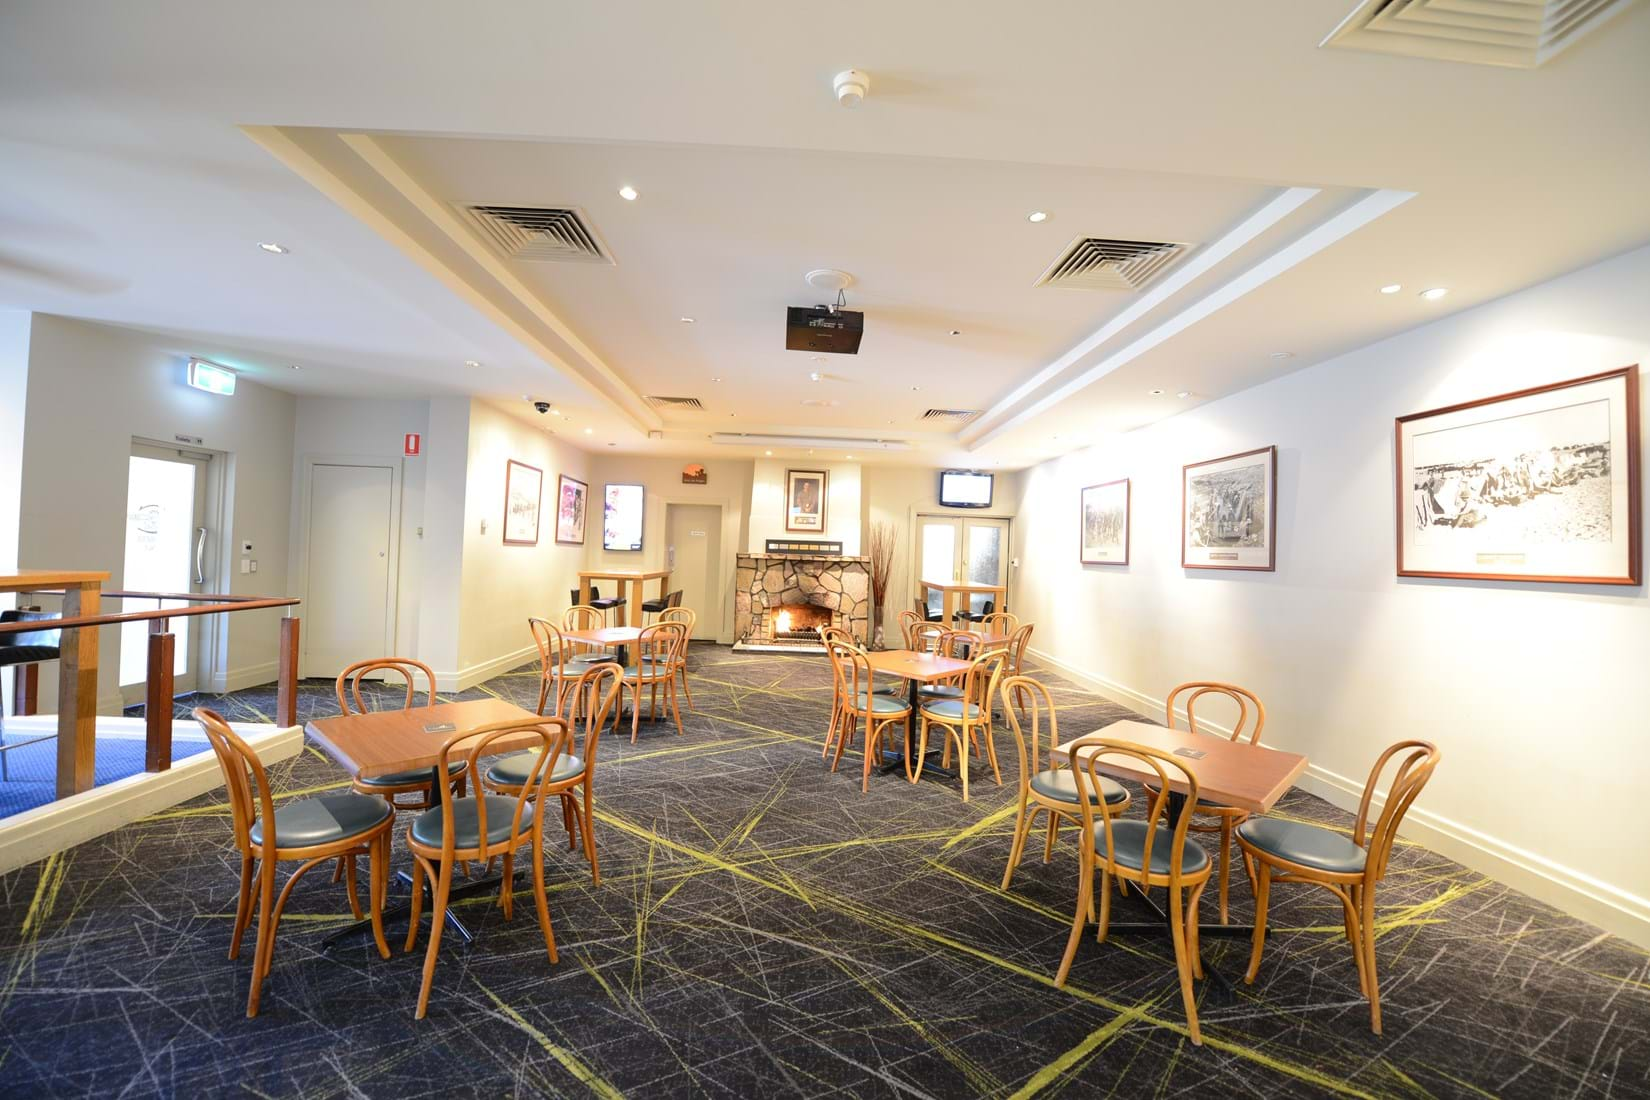 Image Gallery Caulfield RSL Functions Dining Room Bar